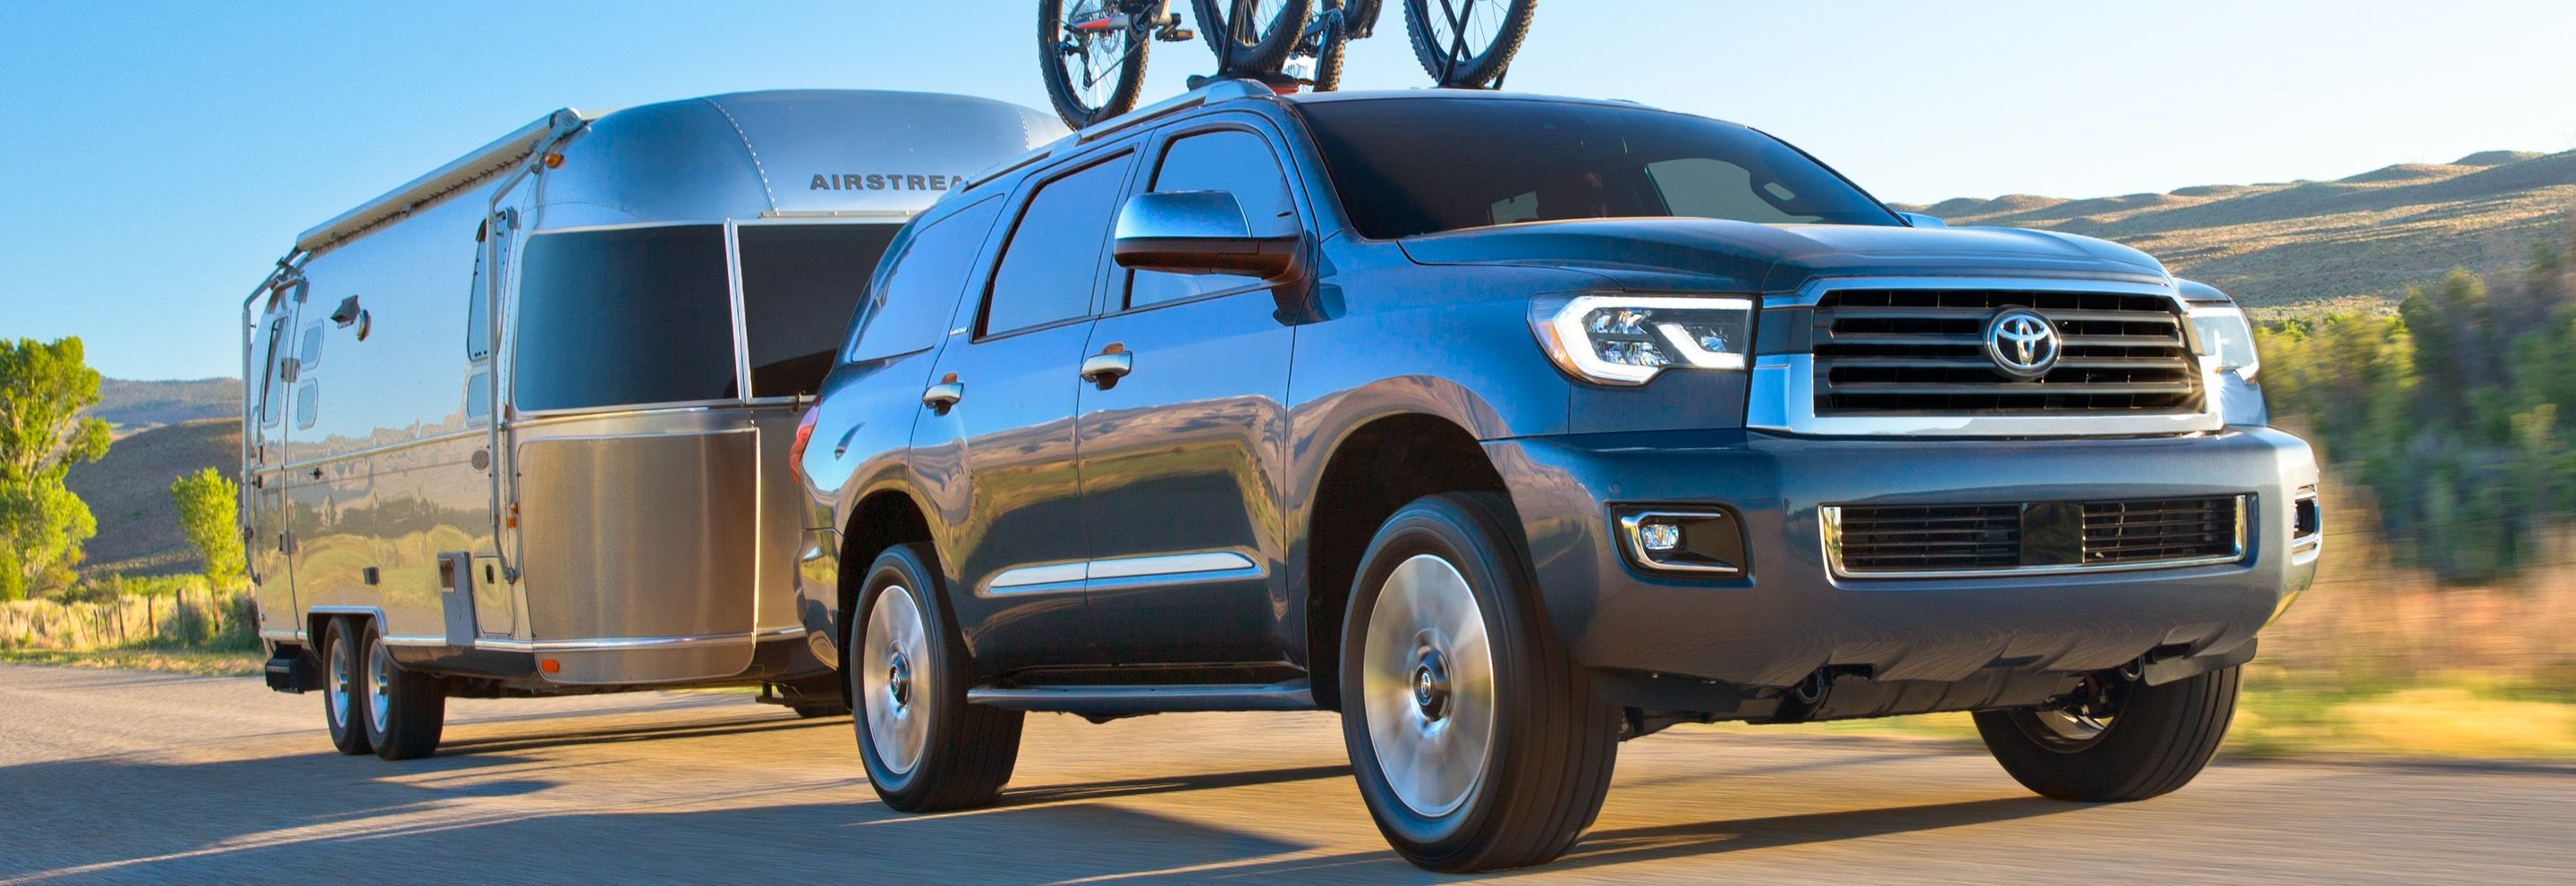 2019 Toyota Sequoia for Sale near Elmhurst, IL